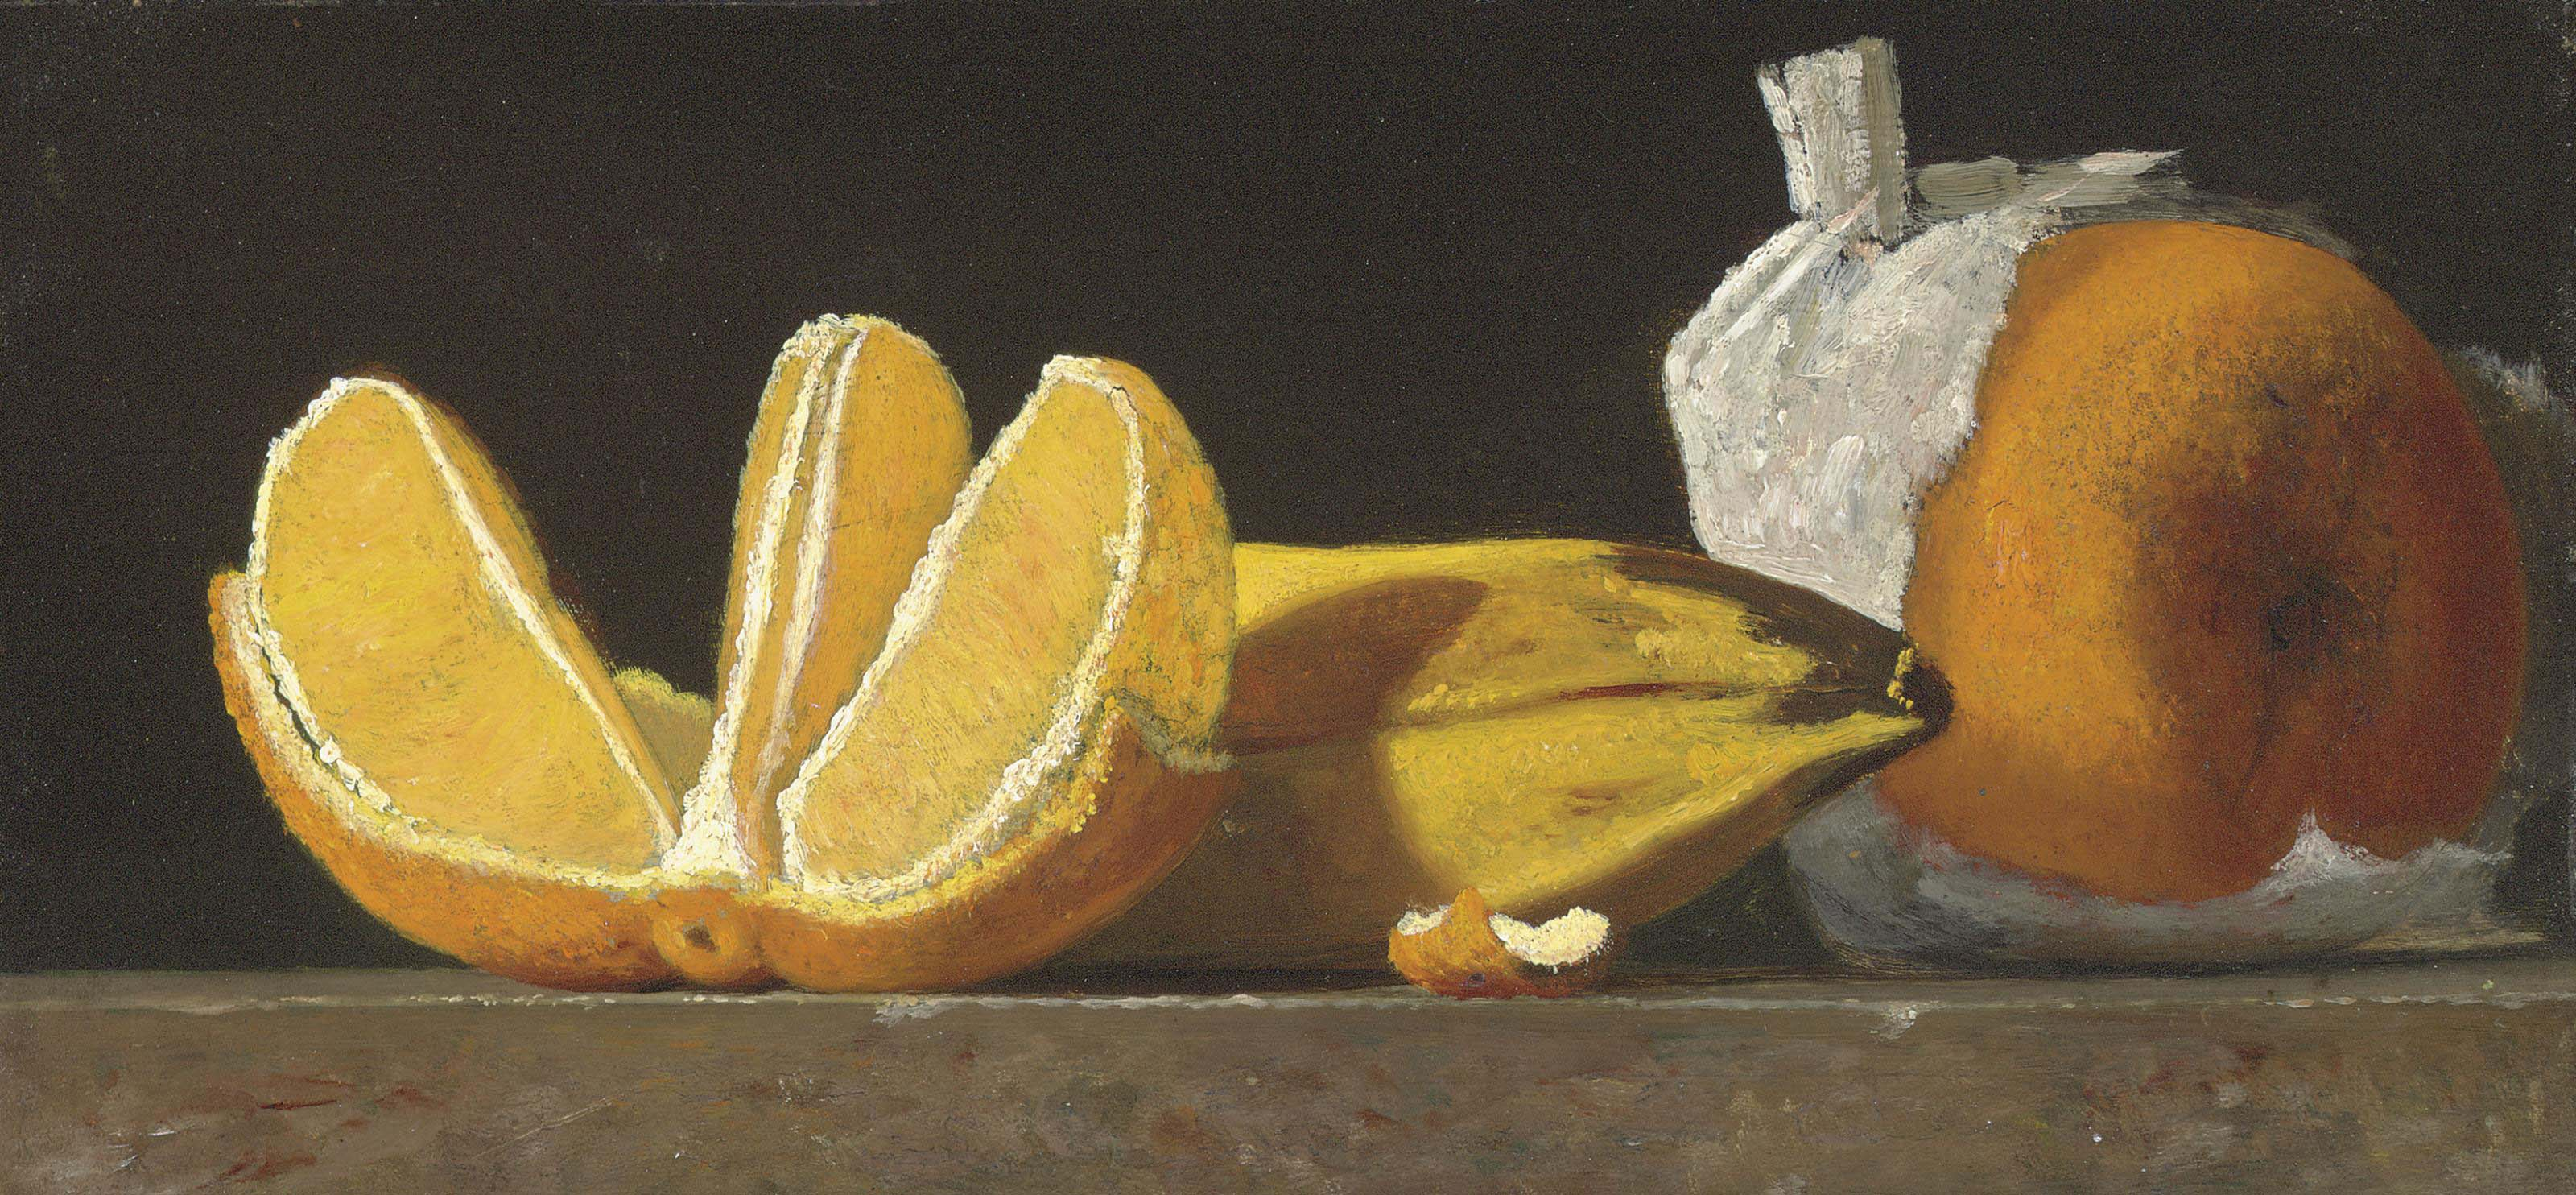 Still Life with Oranges and Banana